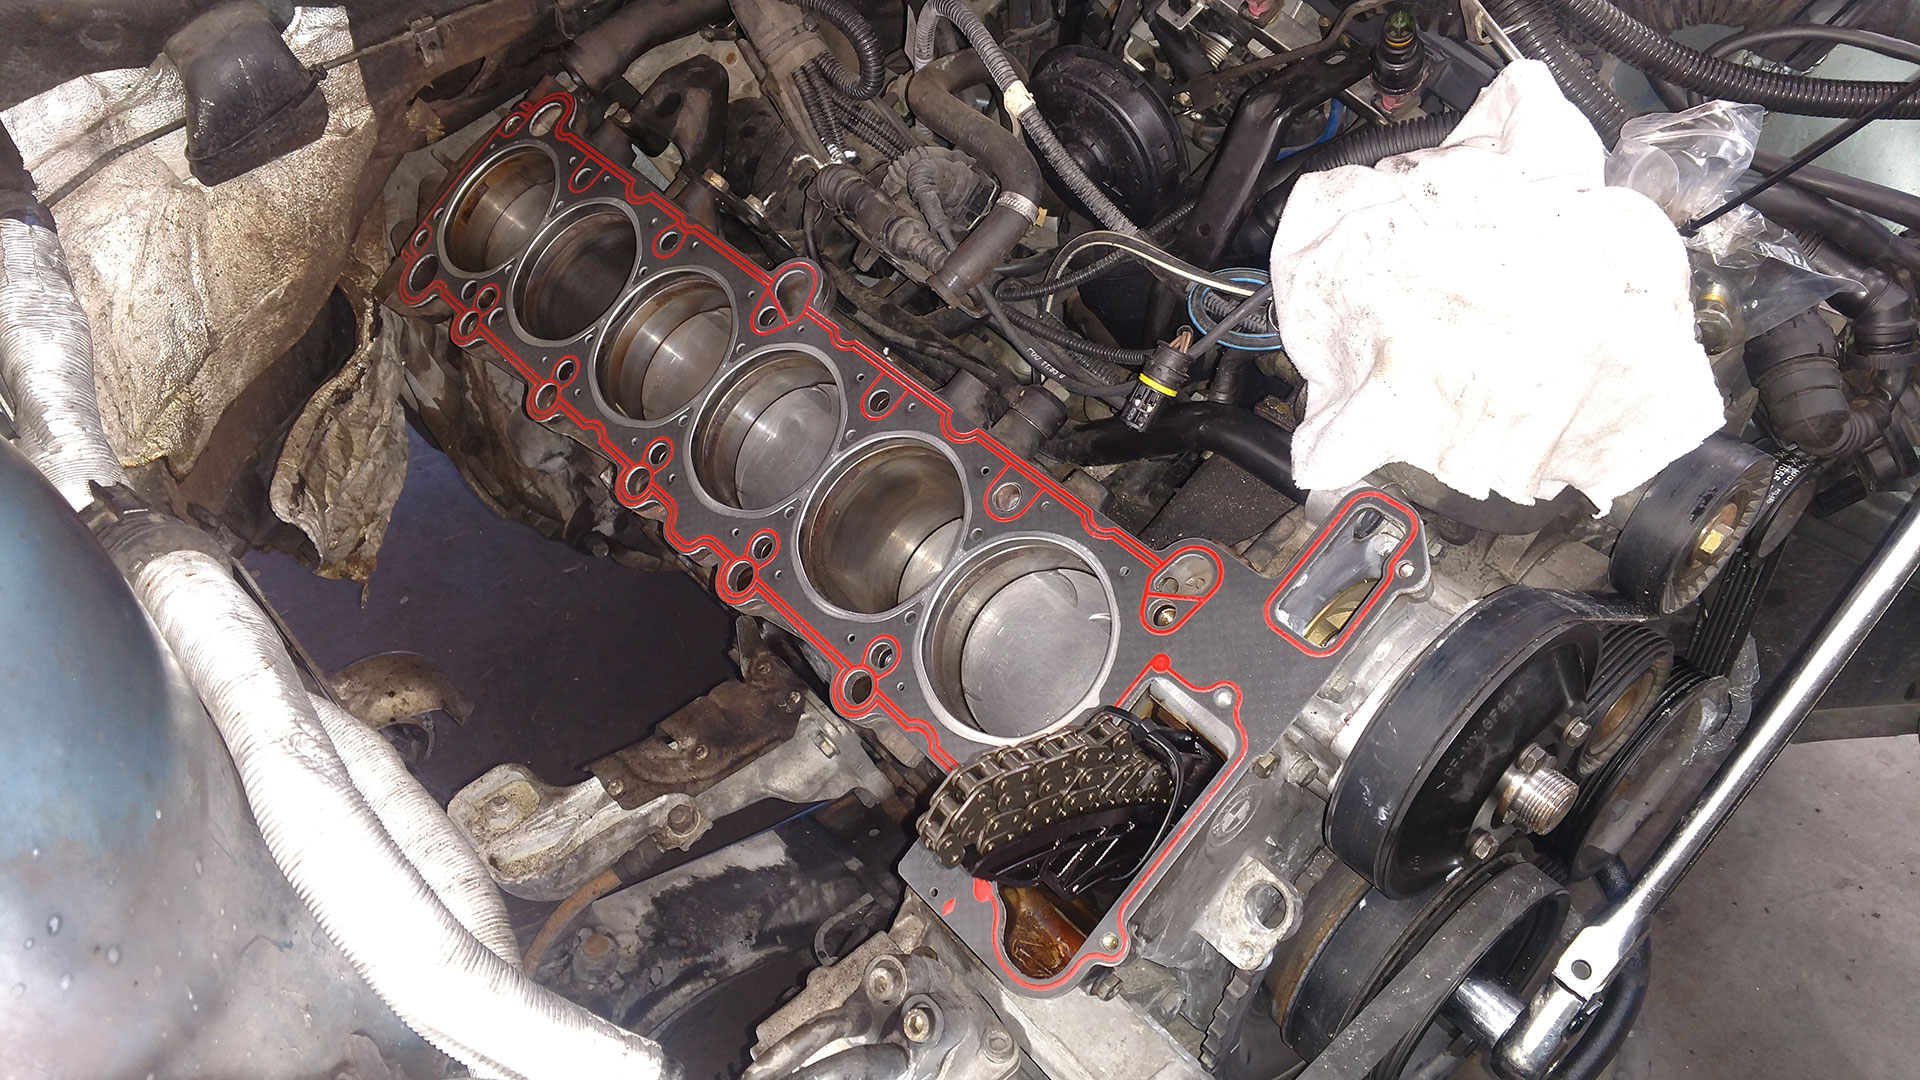 One last shot of the new head gasket in place ready for the head install!